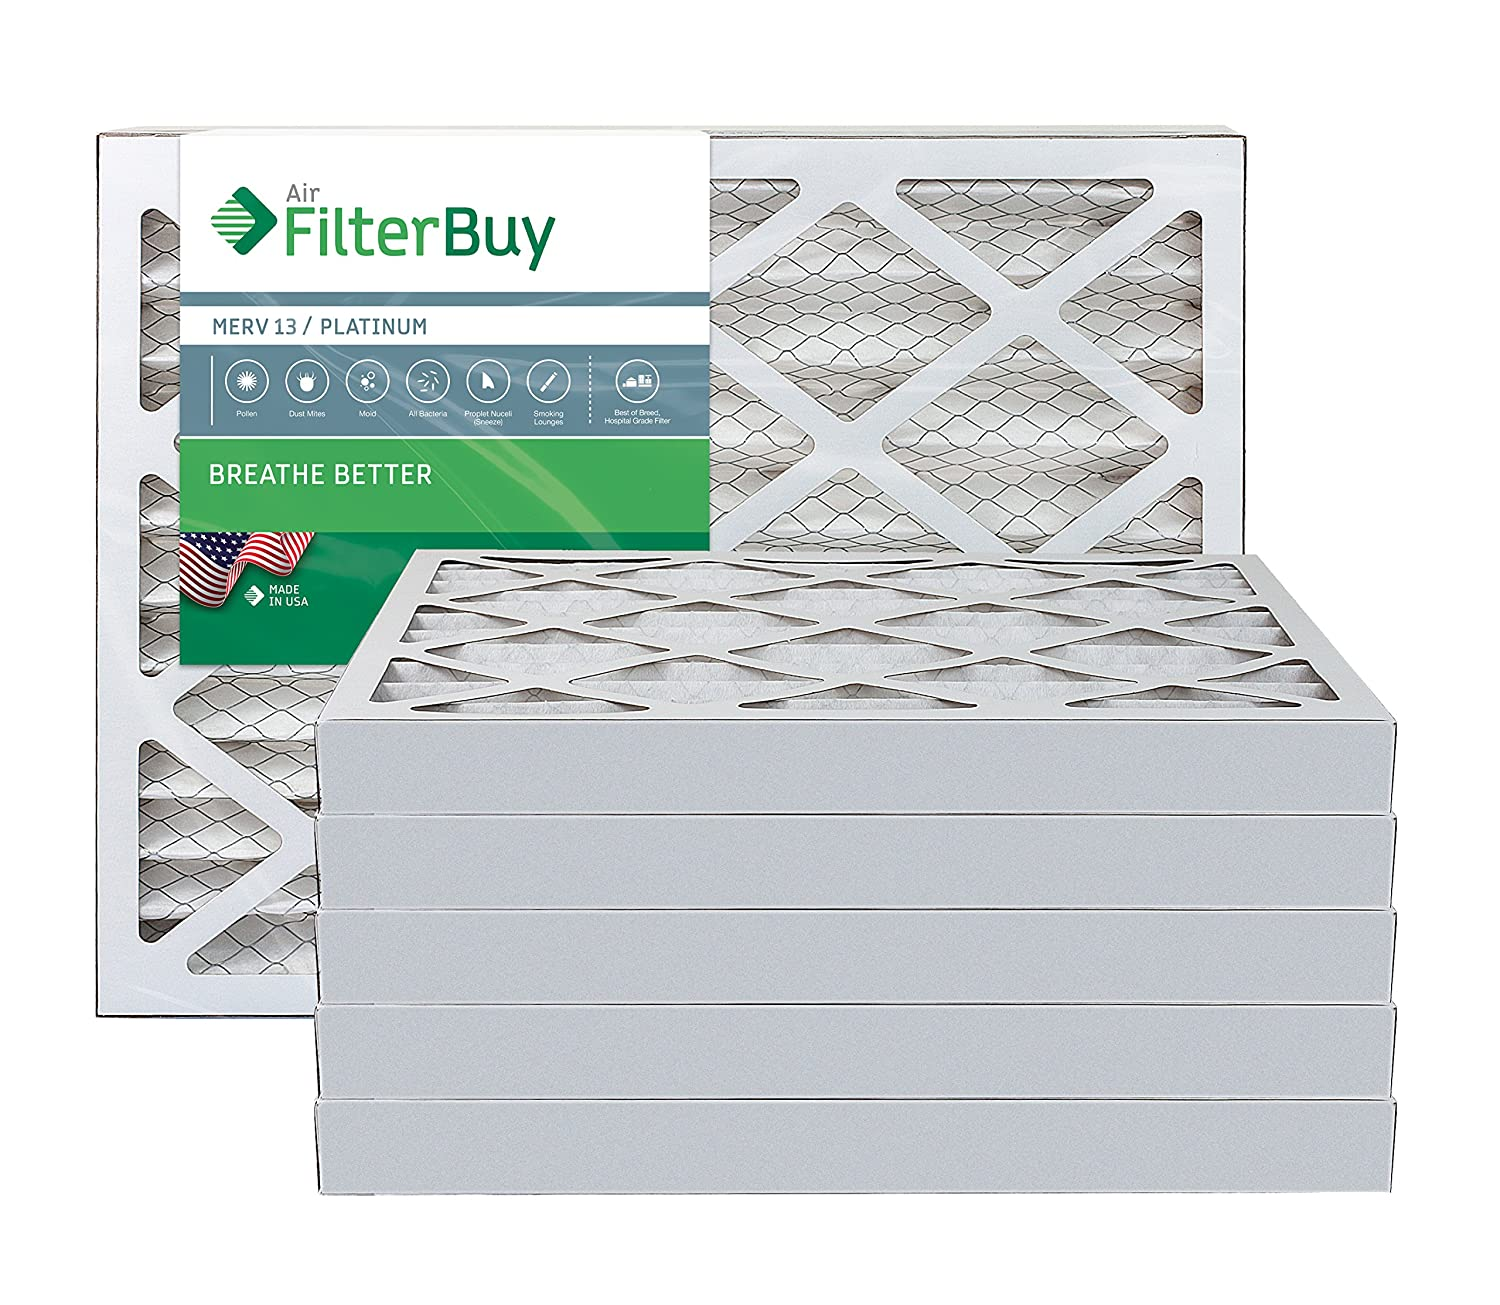 Best furnace air filters for allergies - Afb Platinum Merv 13 12x20x4 Pleated Ac Furnace Air Filter Pack Of 6 Filters 100 Produced In The Usa Replacement Furnace Filters Amazon Com